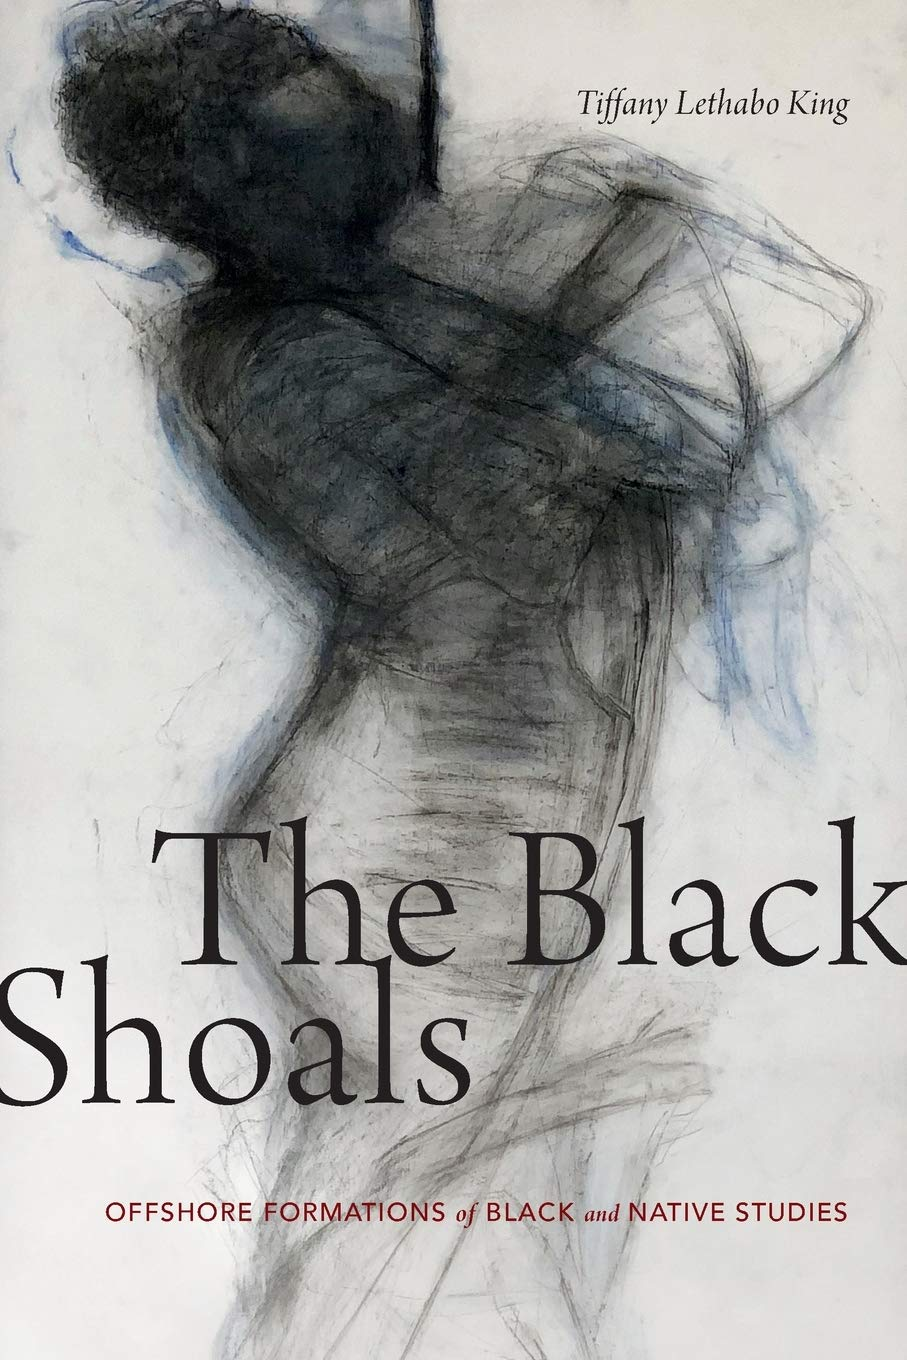 The Black Shoals: Offshore Formations of Black and Native Studies by Tiffany Lethabo King